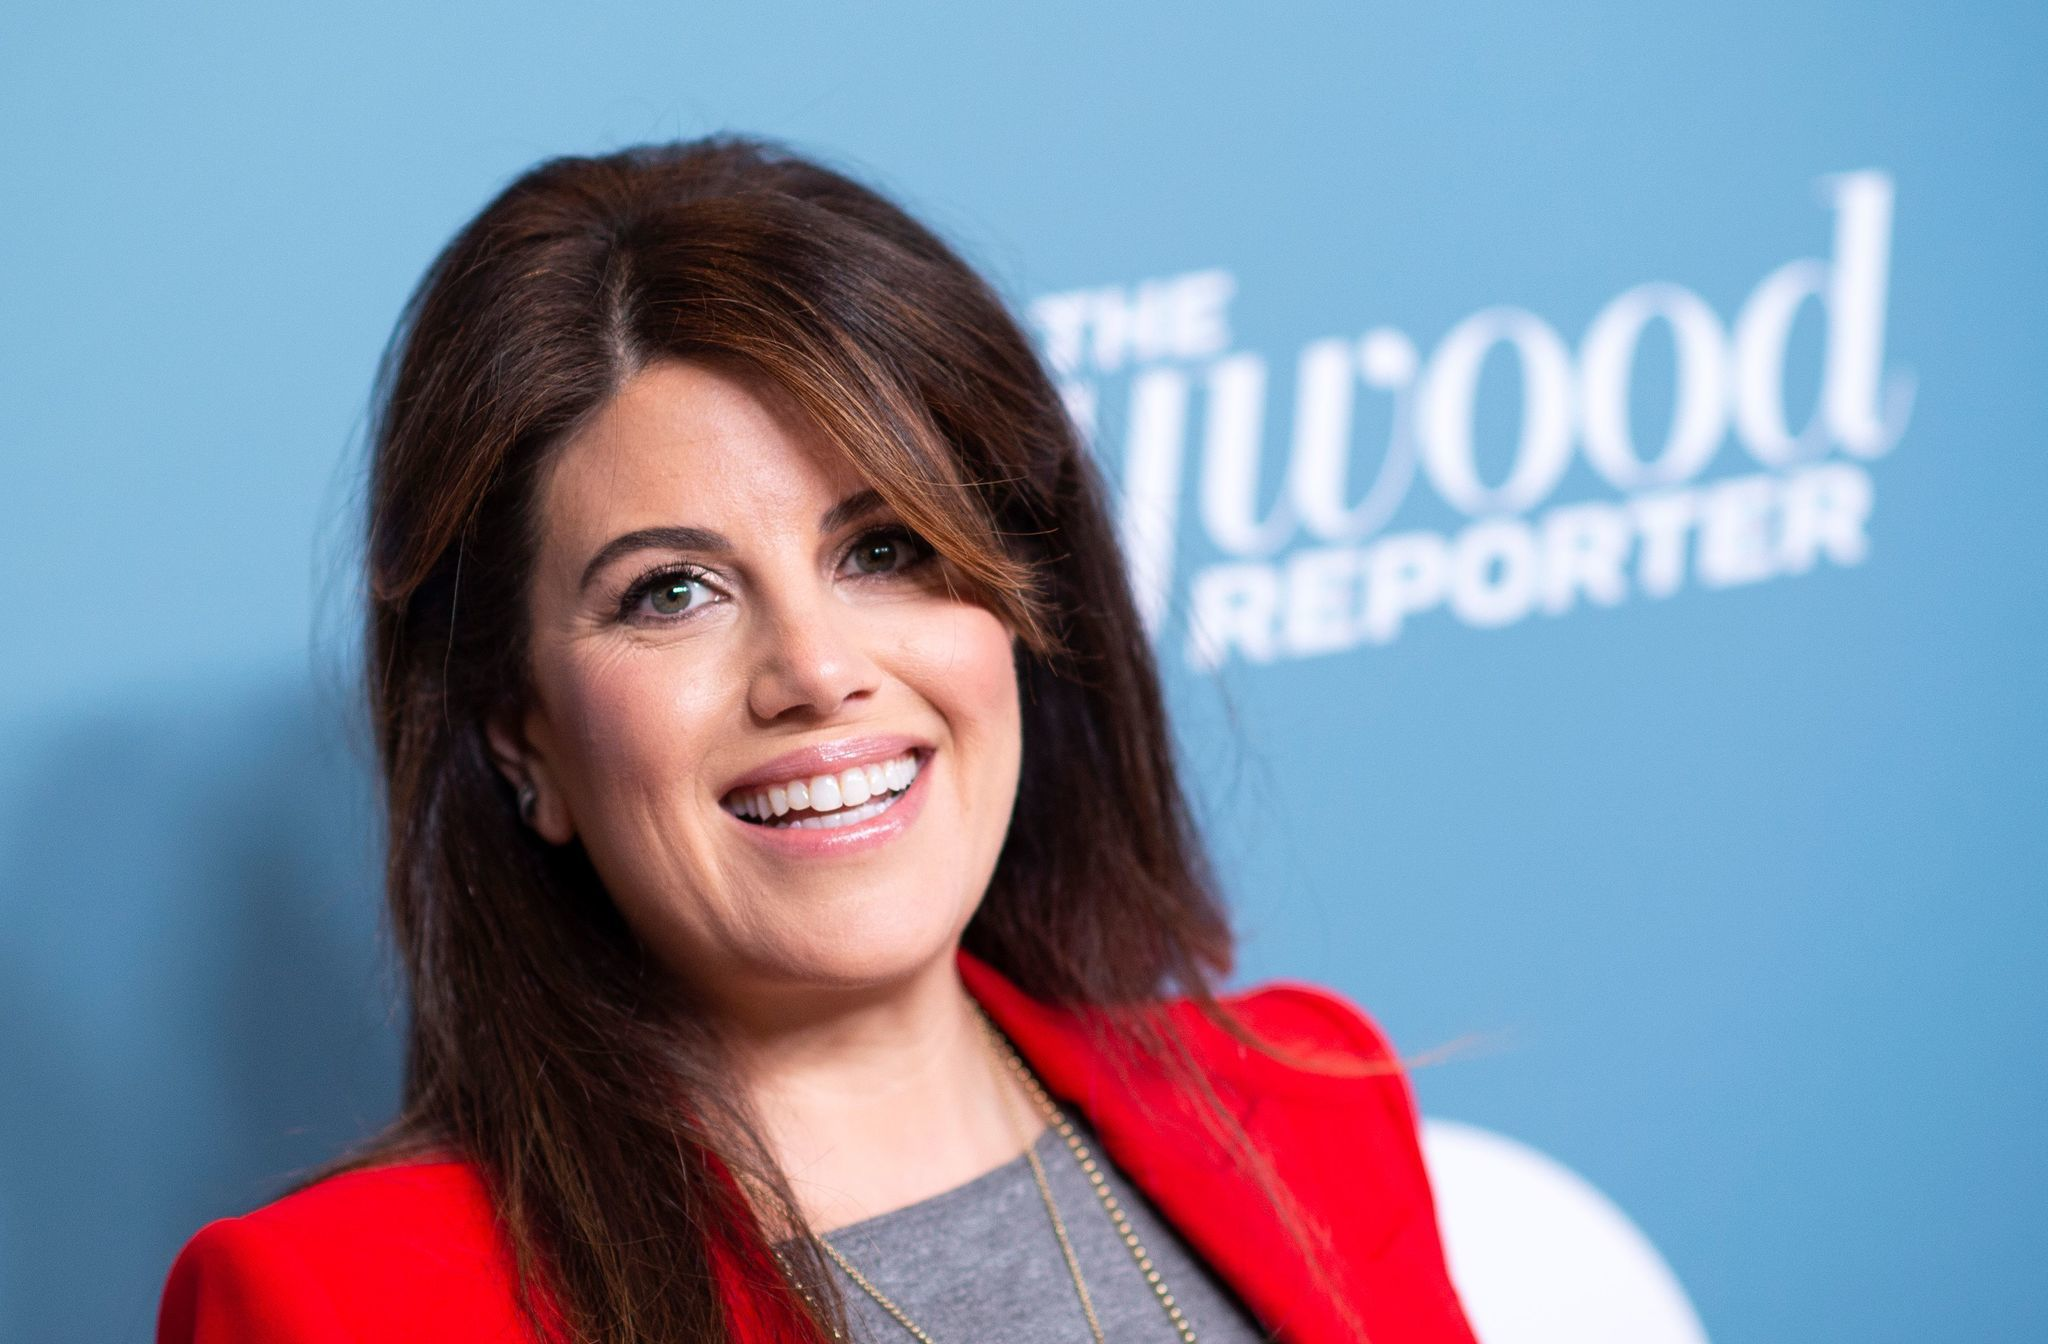 Monica Lewinsky reveals worst career advice she ever got: a White House internship 'will be amazing on your resume'